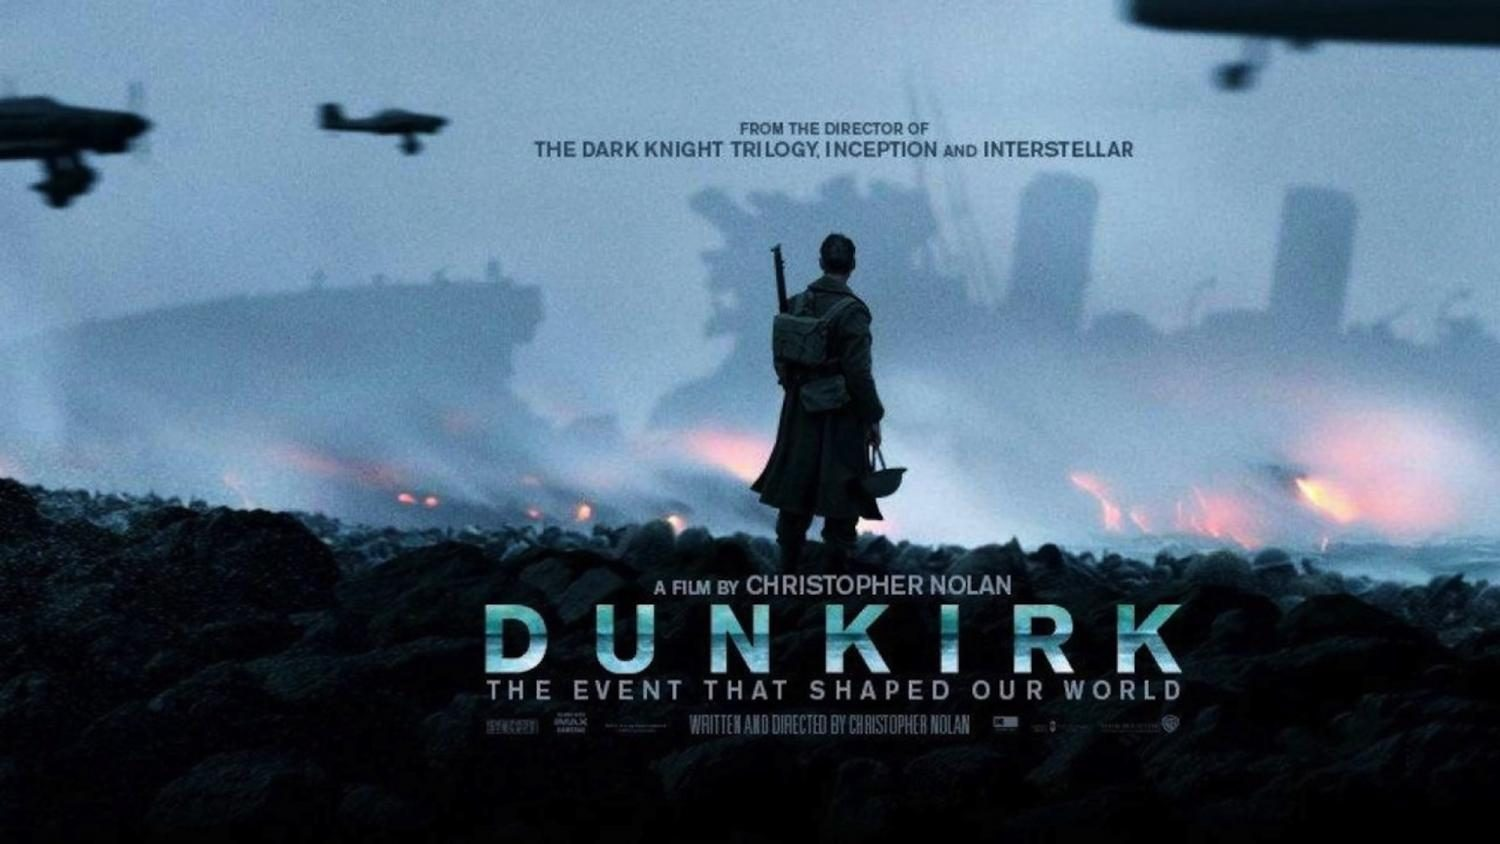 Dunkirk Thrills and Reaches All Expectations